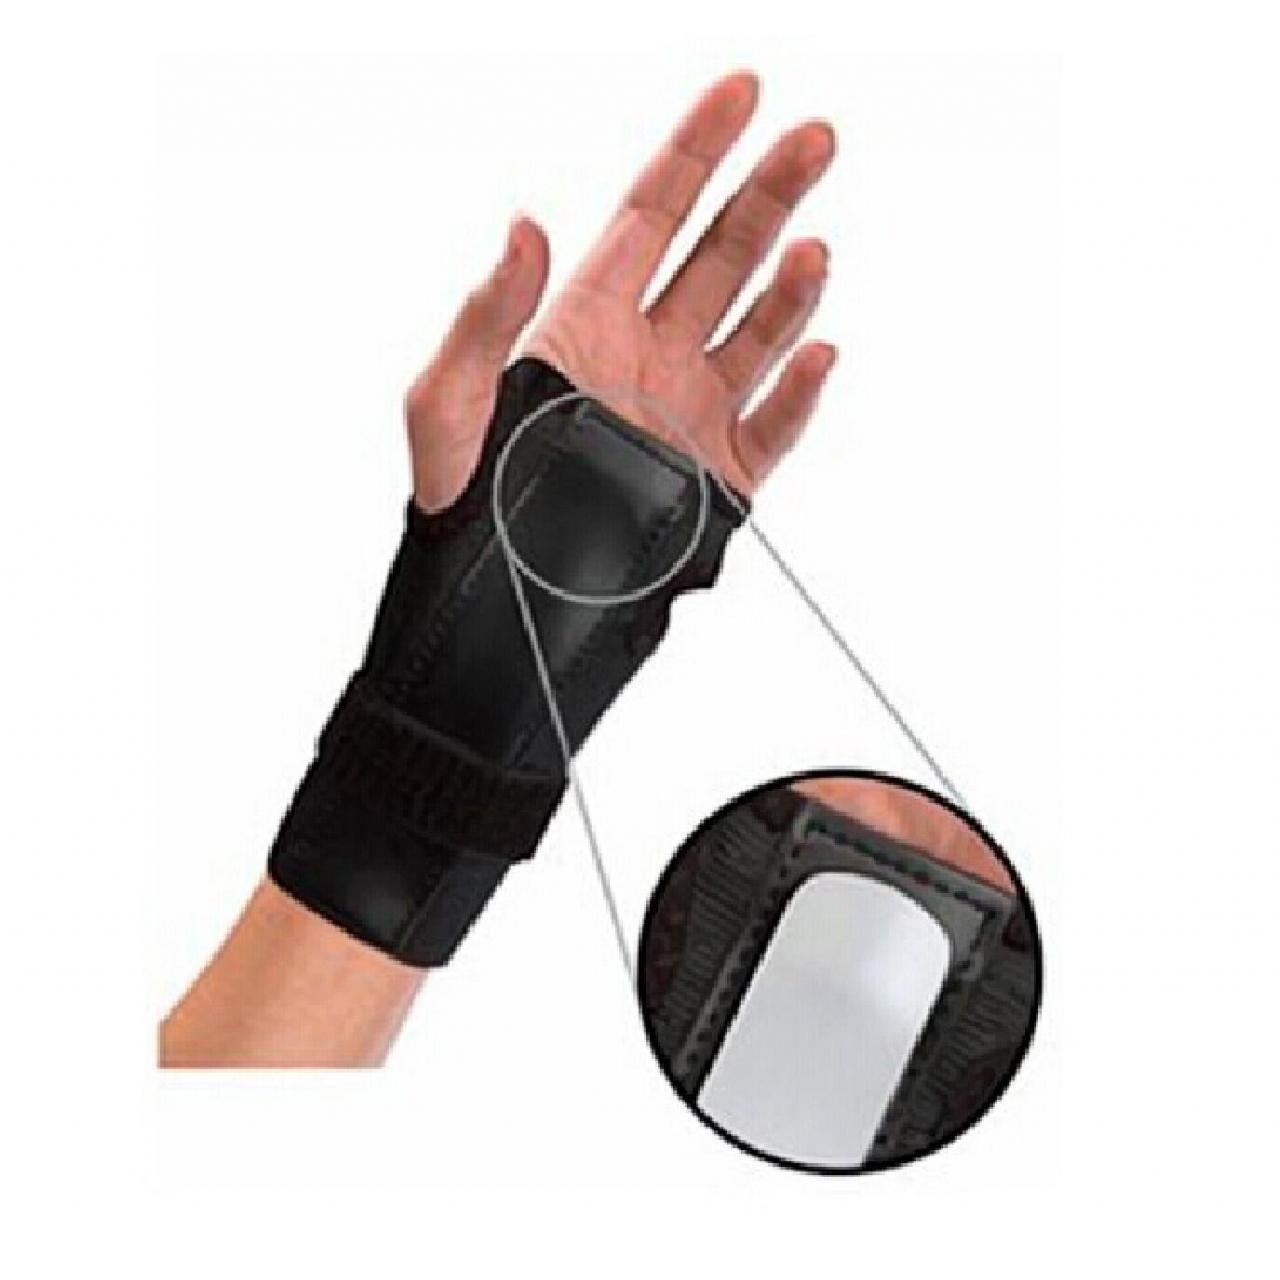 Carpal Tunnel Wrist Splint for both right & left hands Manufactures